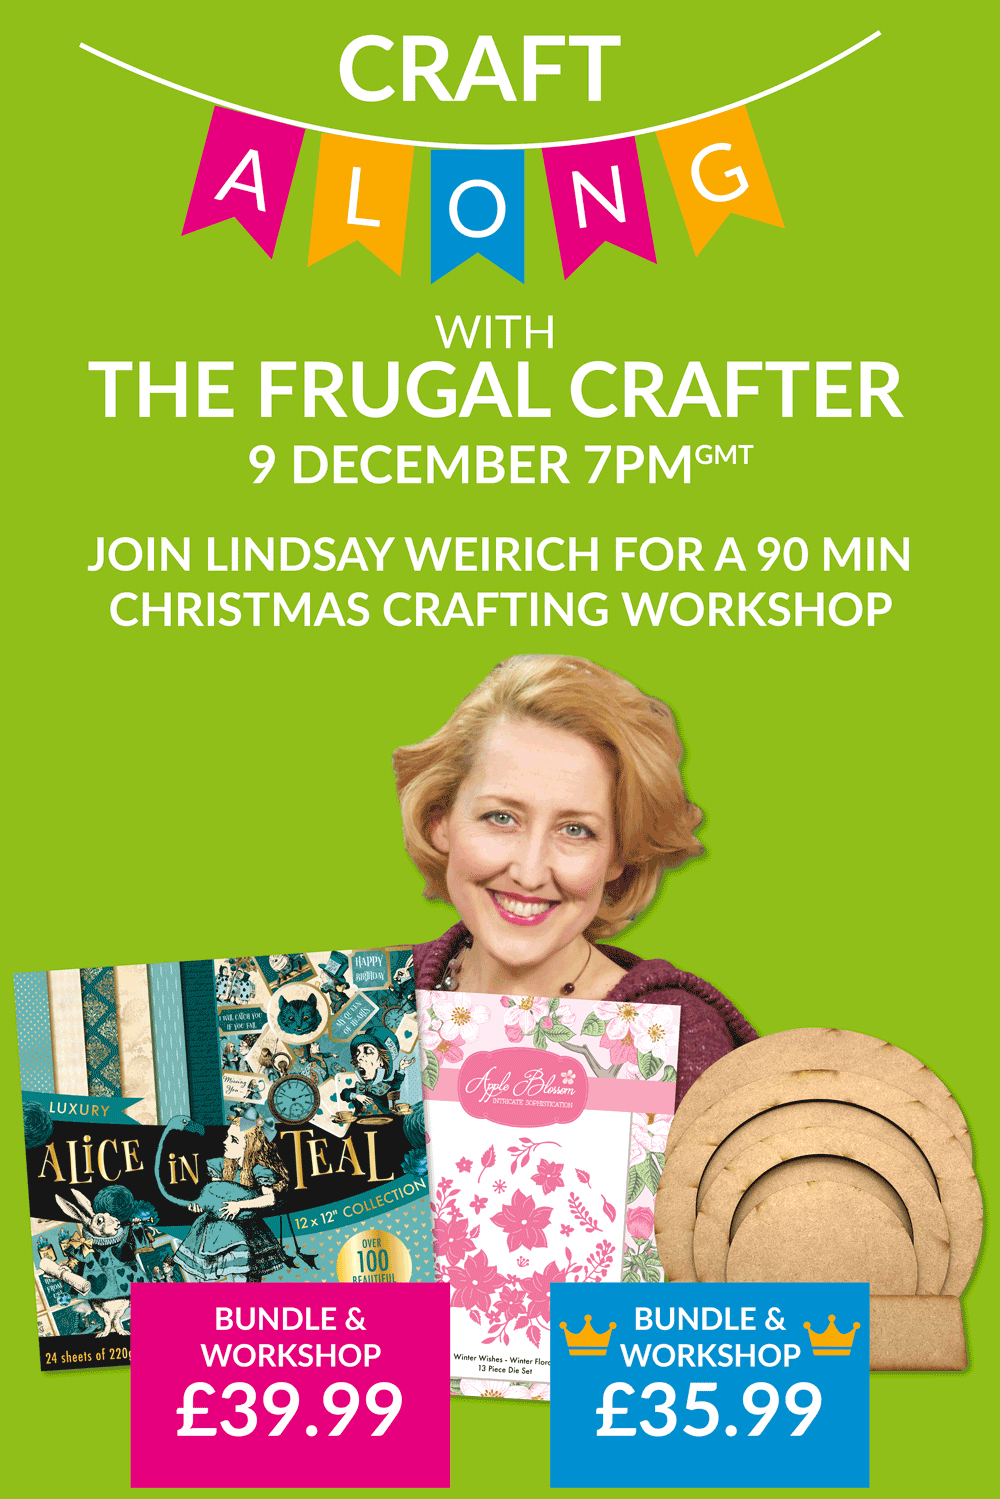 Christmas Craft-Along Workshop with The Frugal Crafter, Lindsay Weirich!